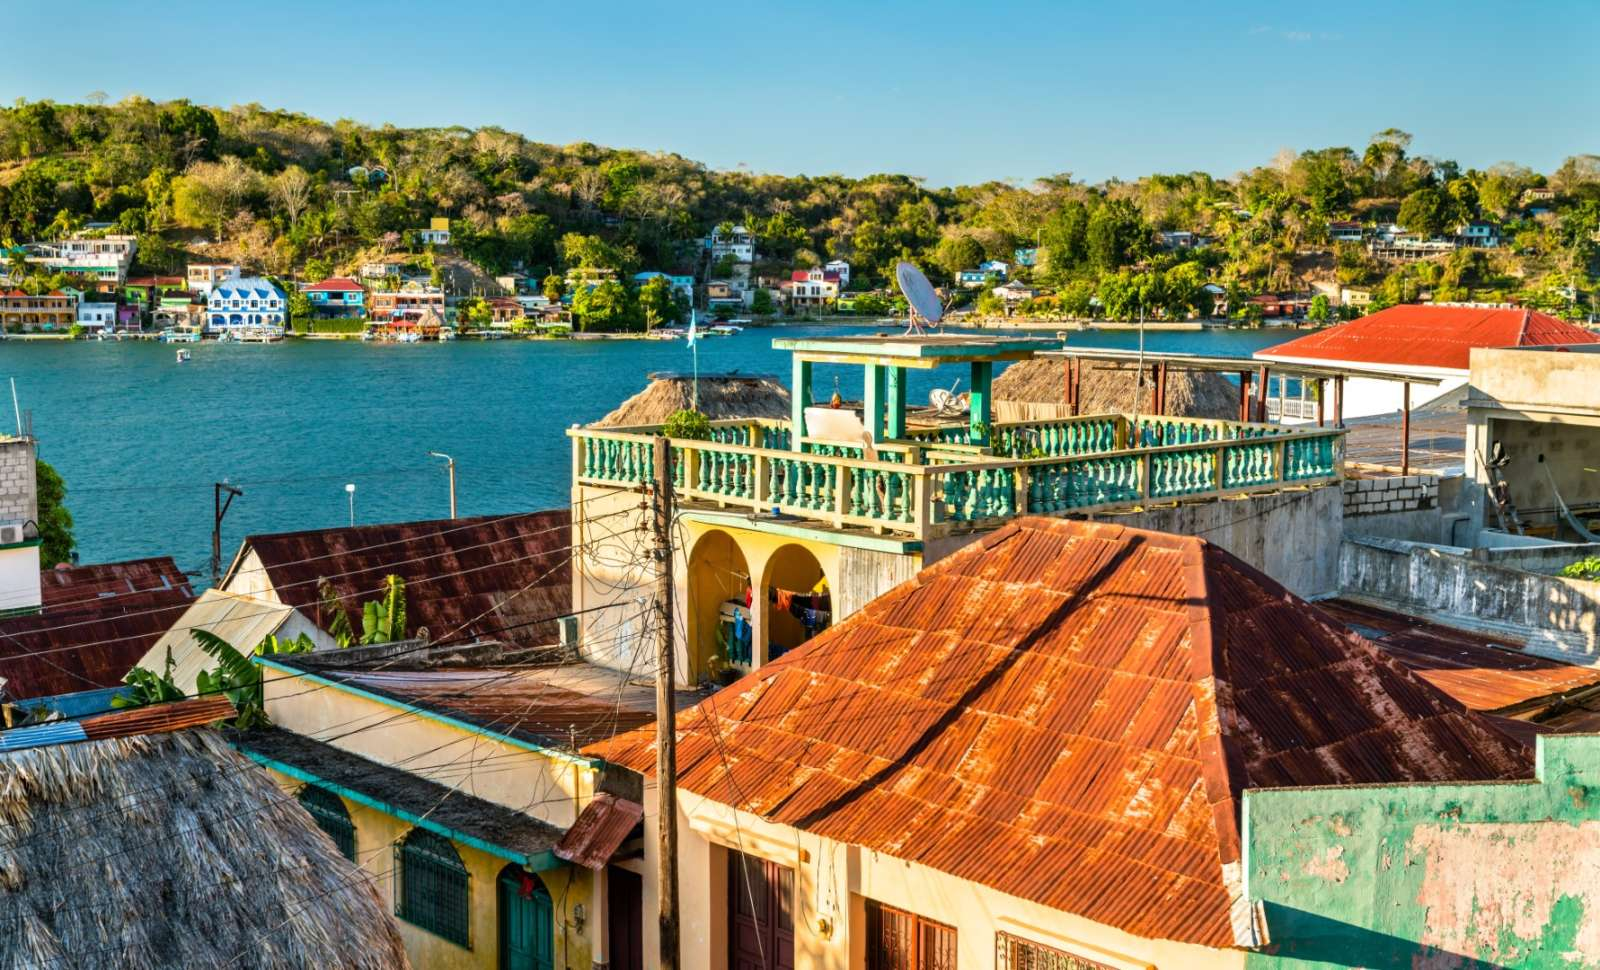 Rooftops of Flores, Guatemala with lakeview